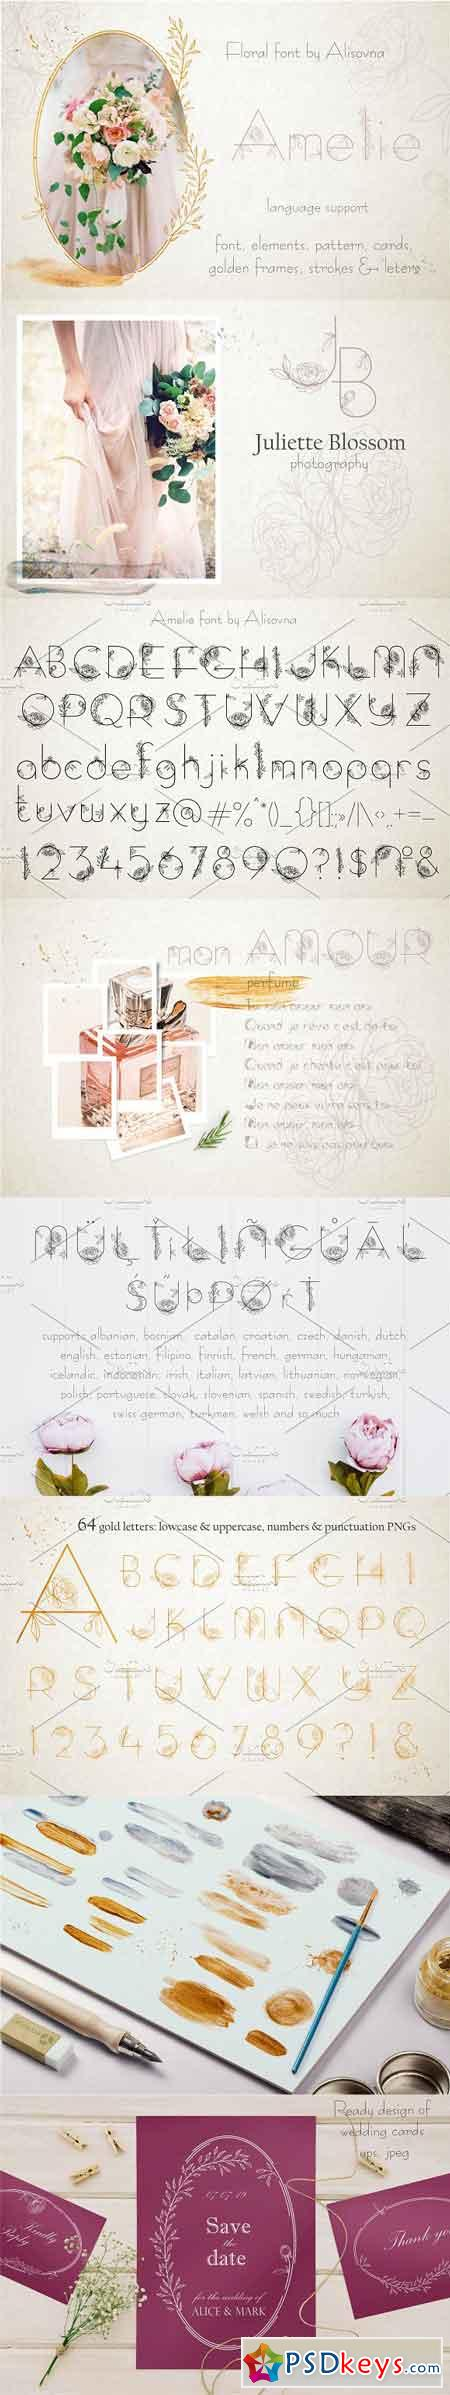 Amelie Floral Display Font 2680535